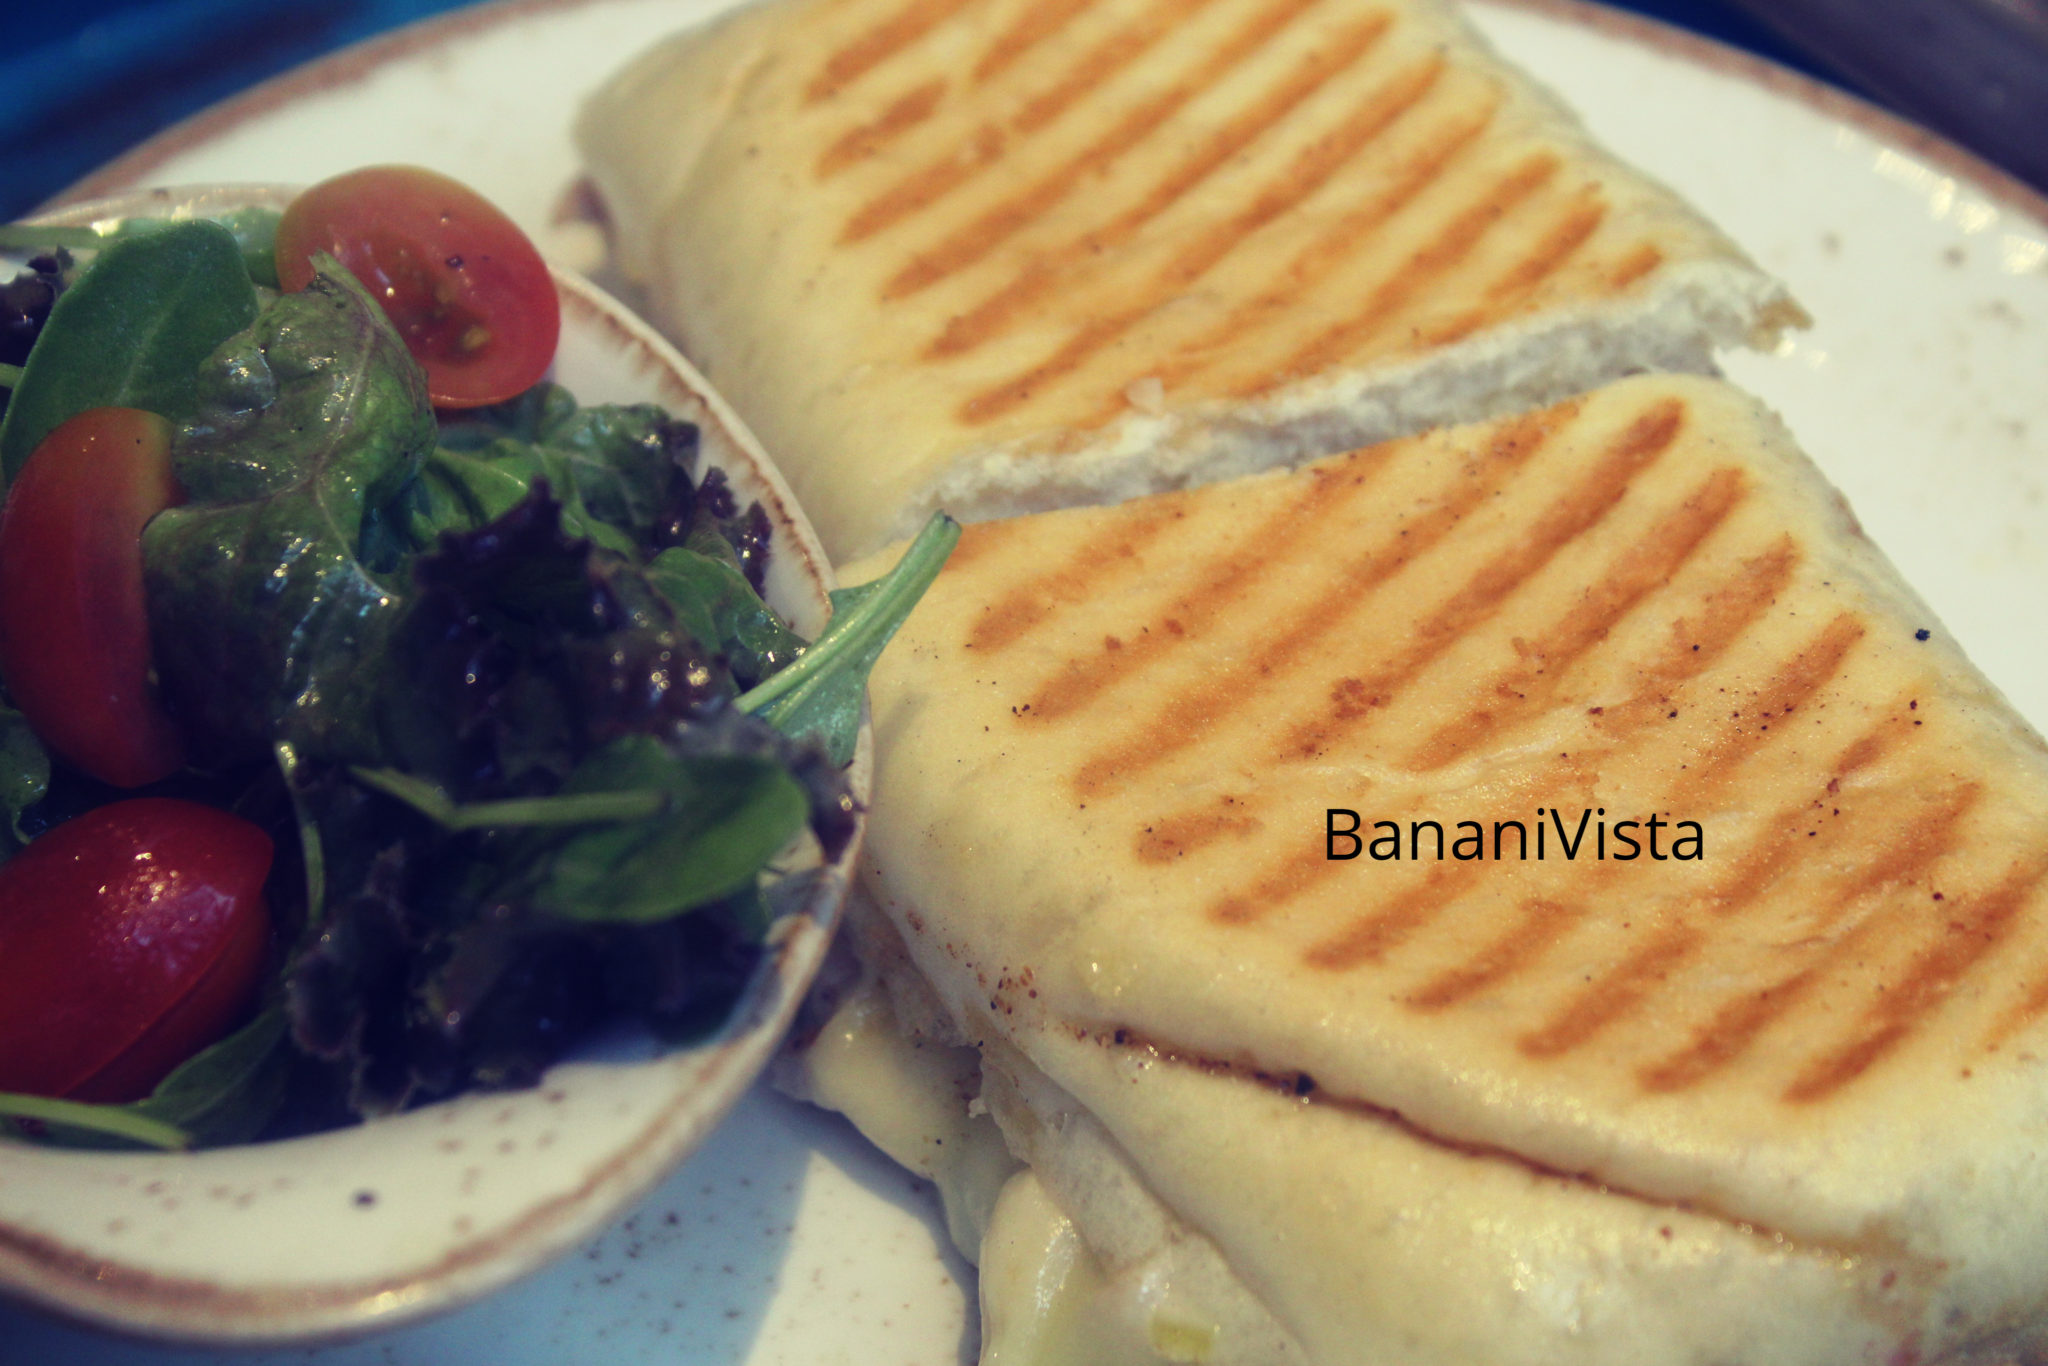 Chicken and cheese sandwich, Menu, BananiVista